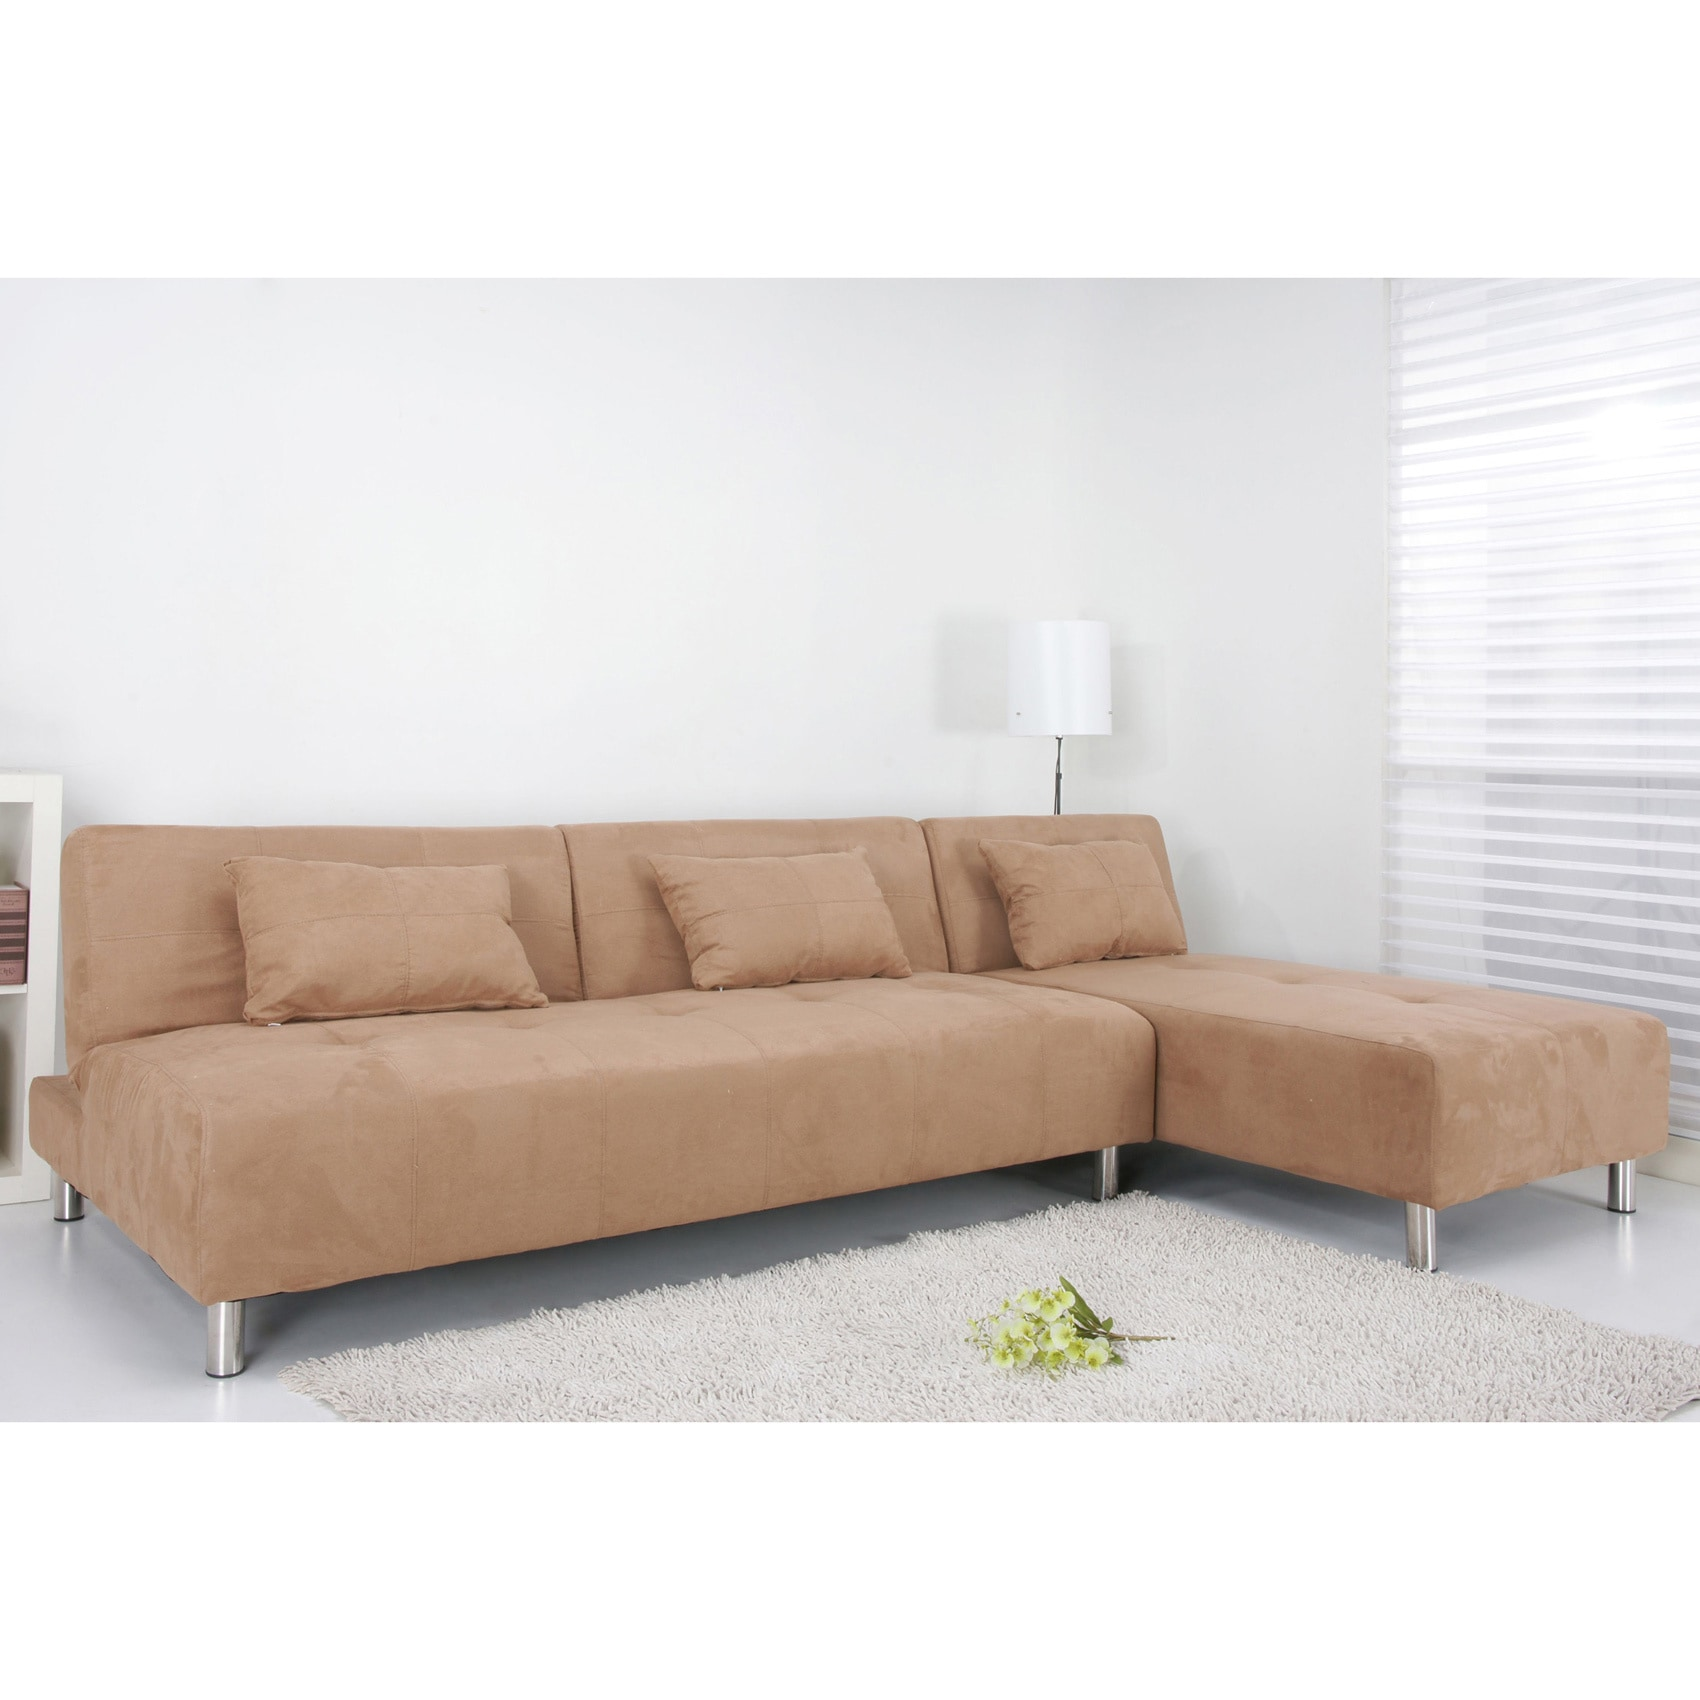 Atlanta Cobblestone Convertible Sectional Sofa Bed at Sears.com